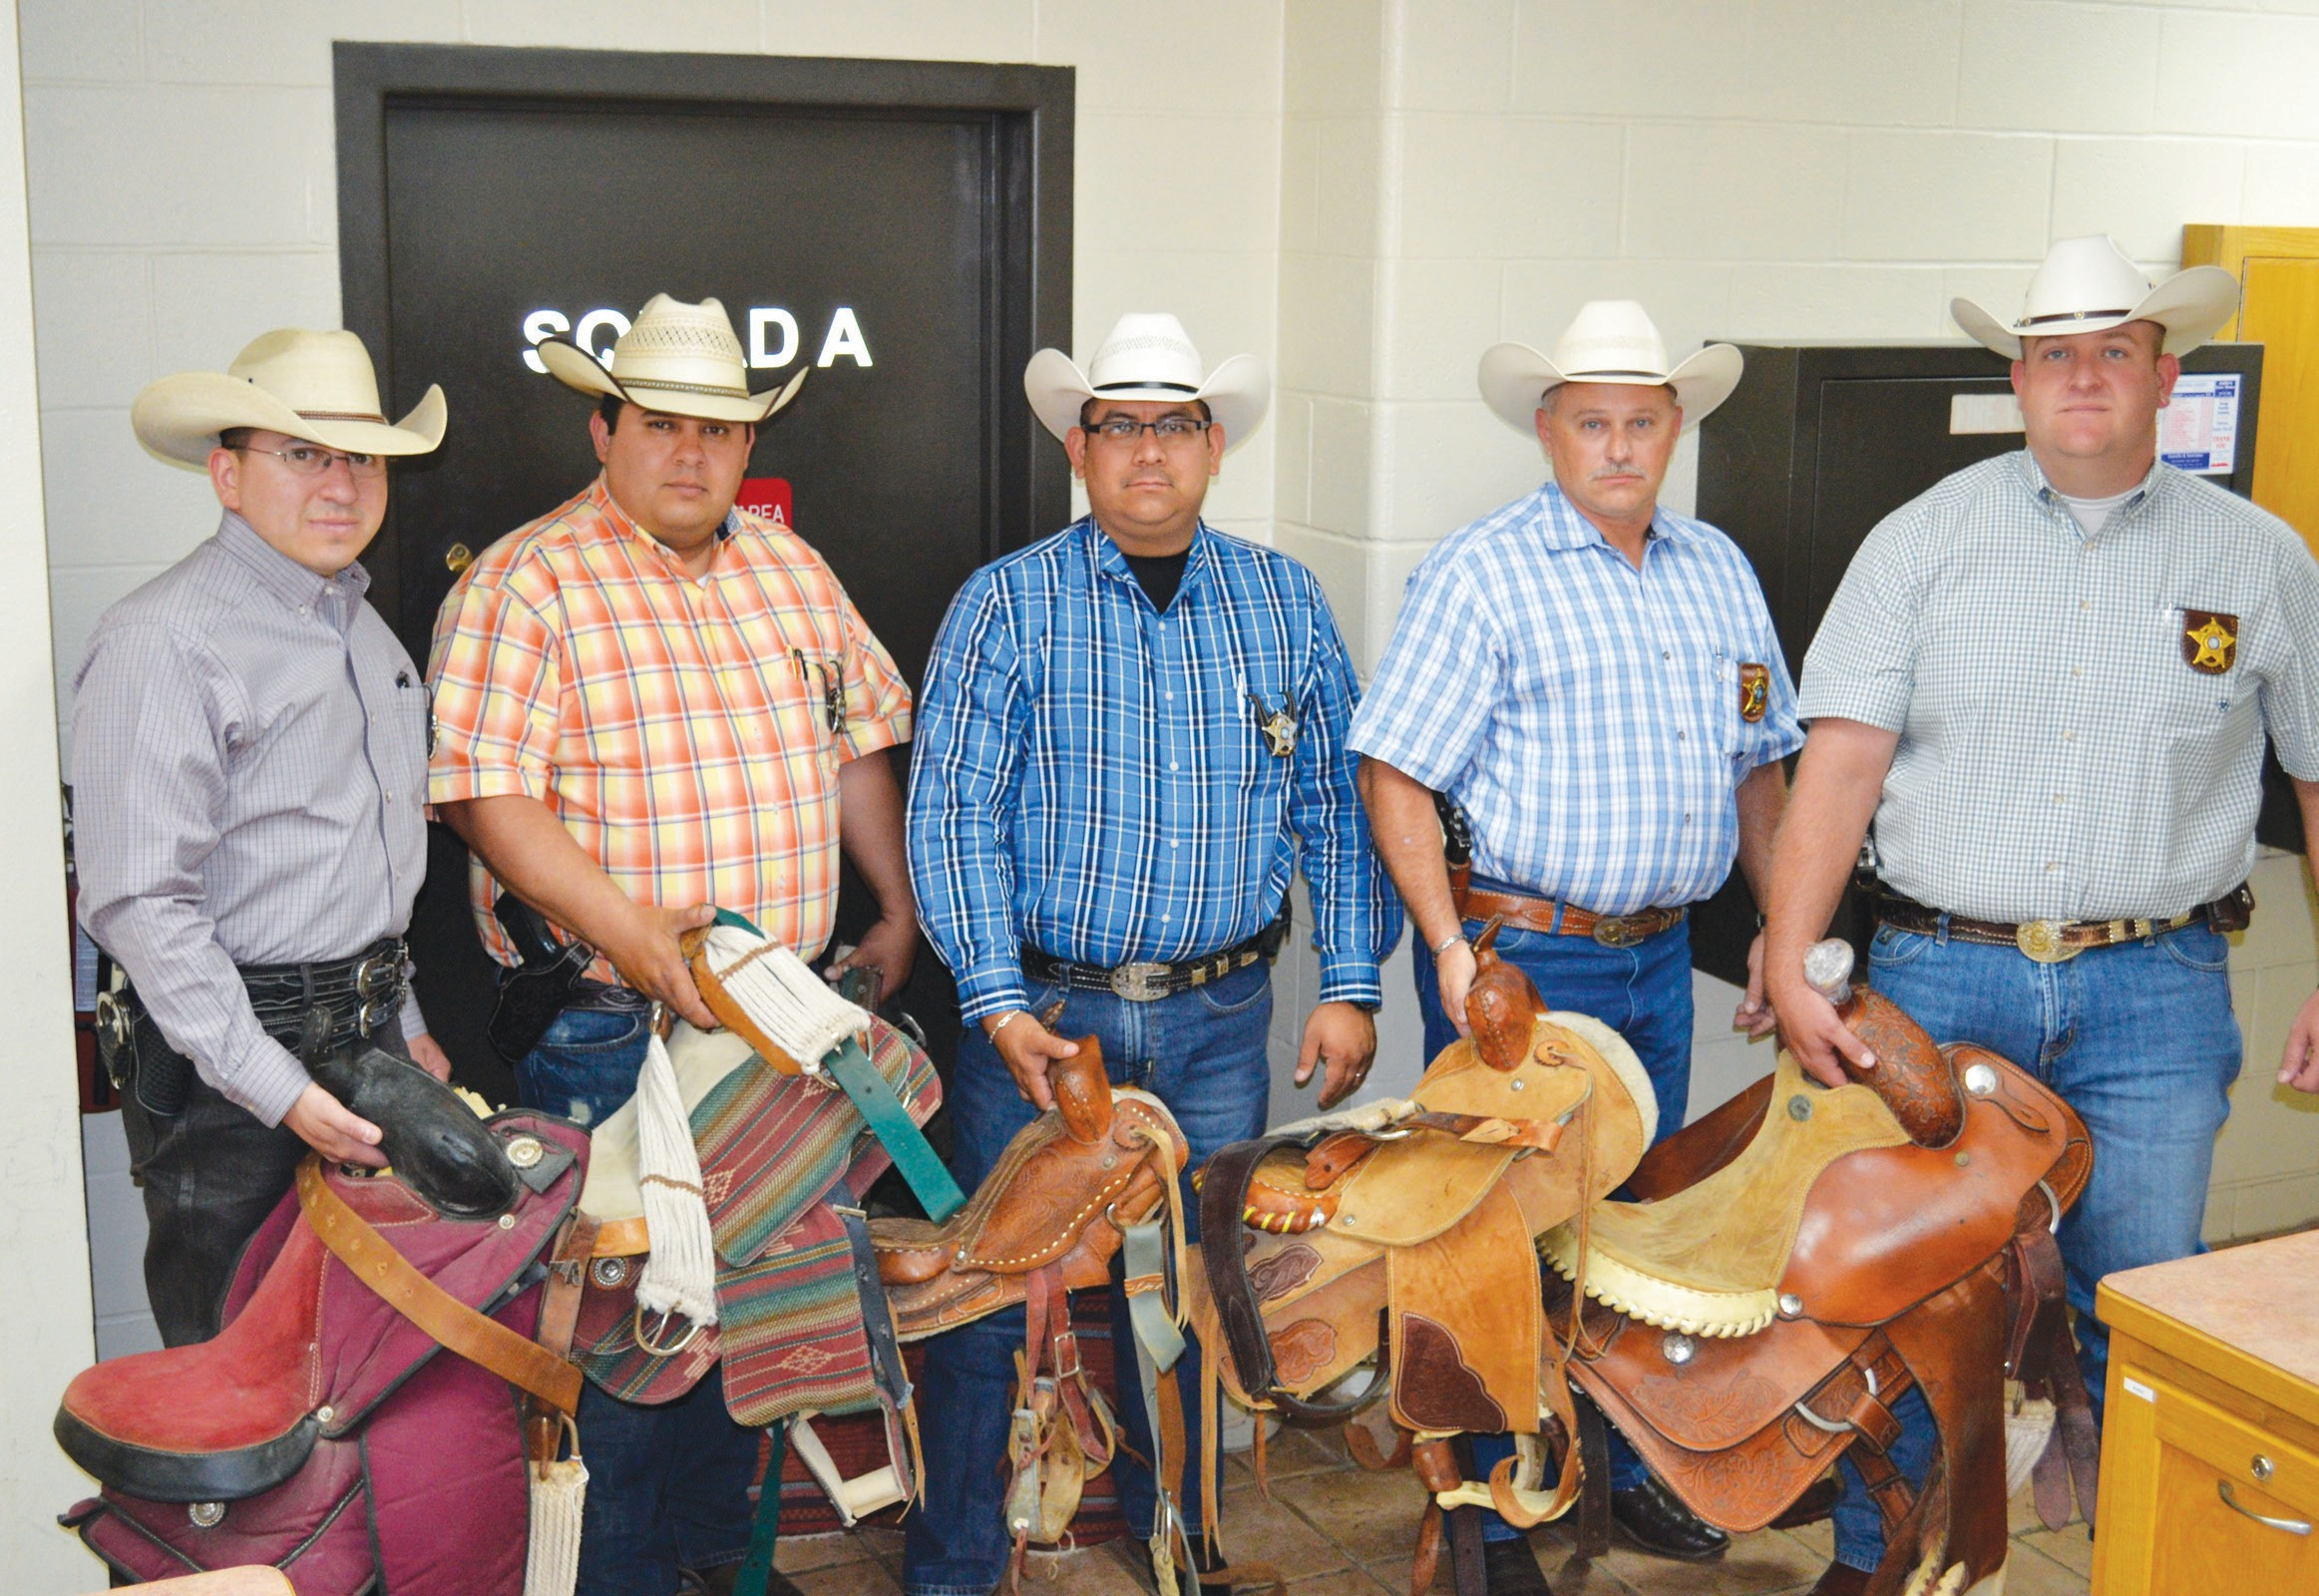 CID investigators pictured with the five recovered saddles stolen in a Verdi burglary are, from left, Sergeant Investigator Max Peralta, Sergeant Investigator Jesse Martinez, Sergeant Investigator Albert Garza, Lieutenant Inv. Wayne Stratton and Captain Investigator Matt Miller.